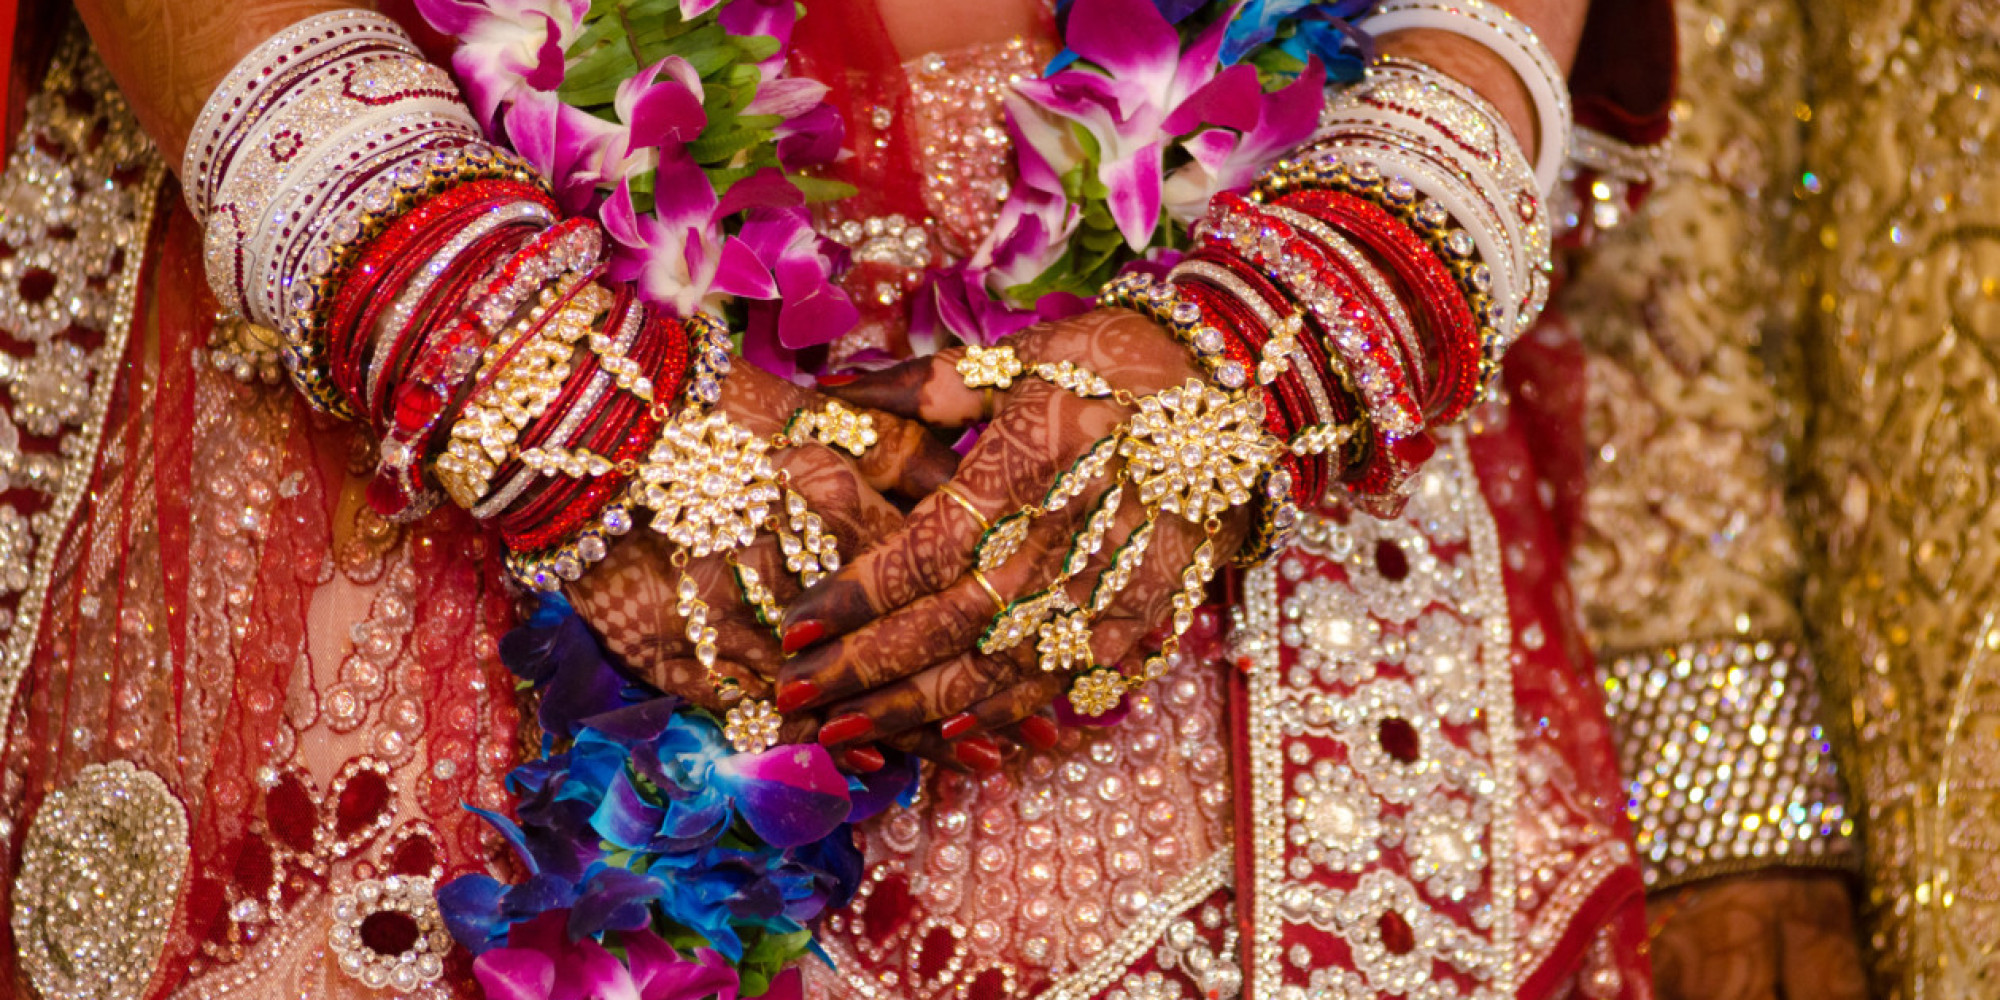 hindu single women in garland Devadasi system is not only exploitation of women, it is the institutionalized exploitation of women it is the exploitation of dalits, the lower class of untouchables it is the religious sanction given to prostitution of helpless economically and socially deprived women it is the glorification of humiliation of women.